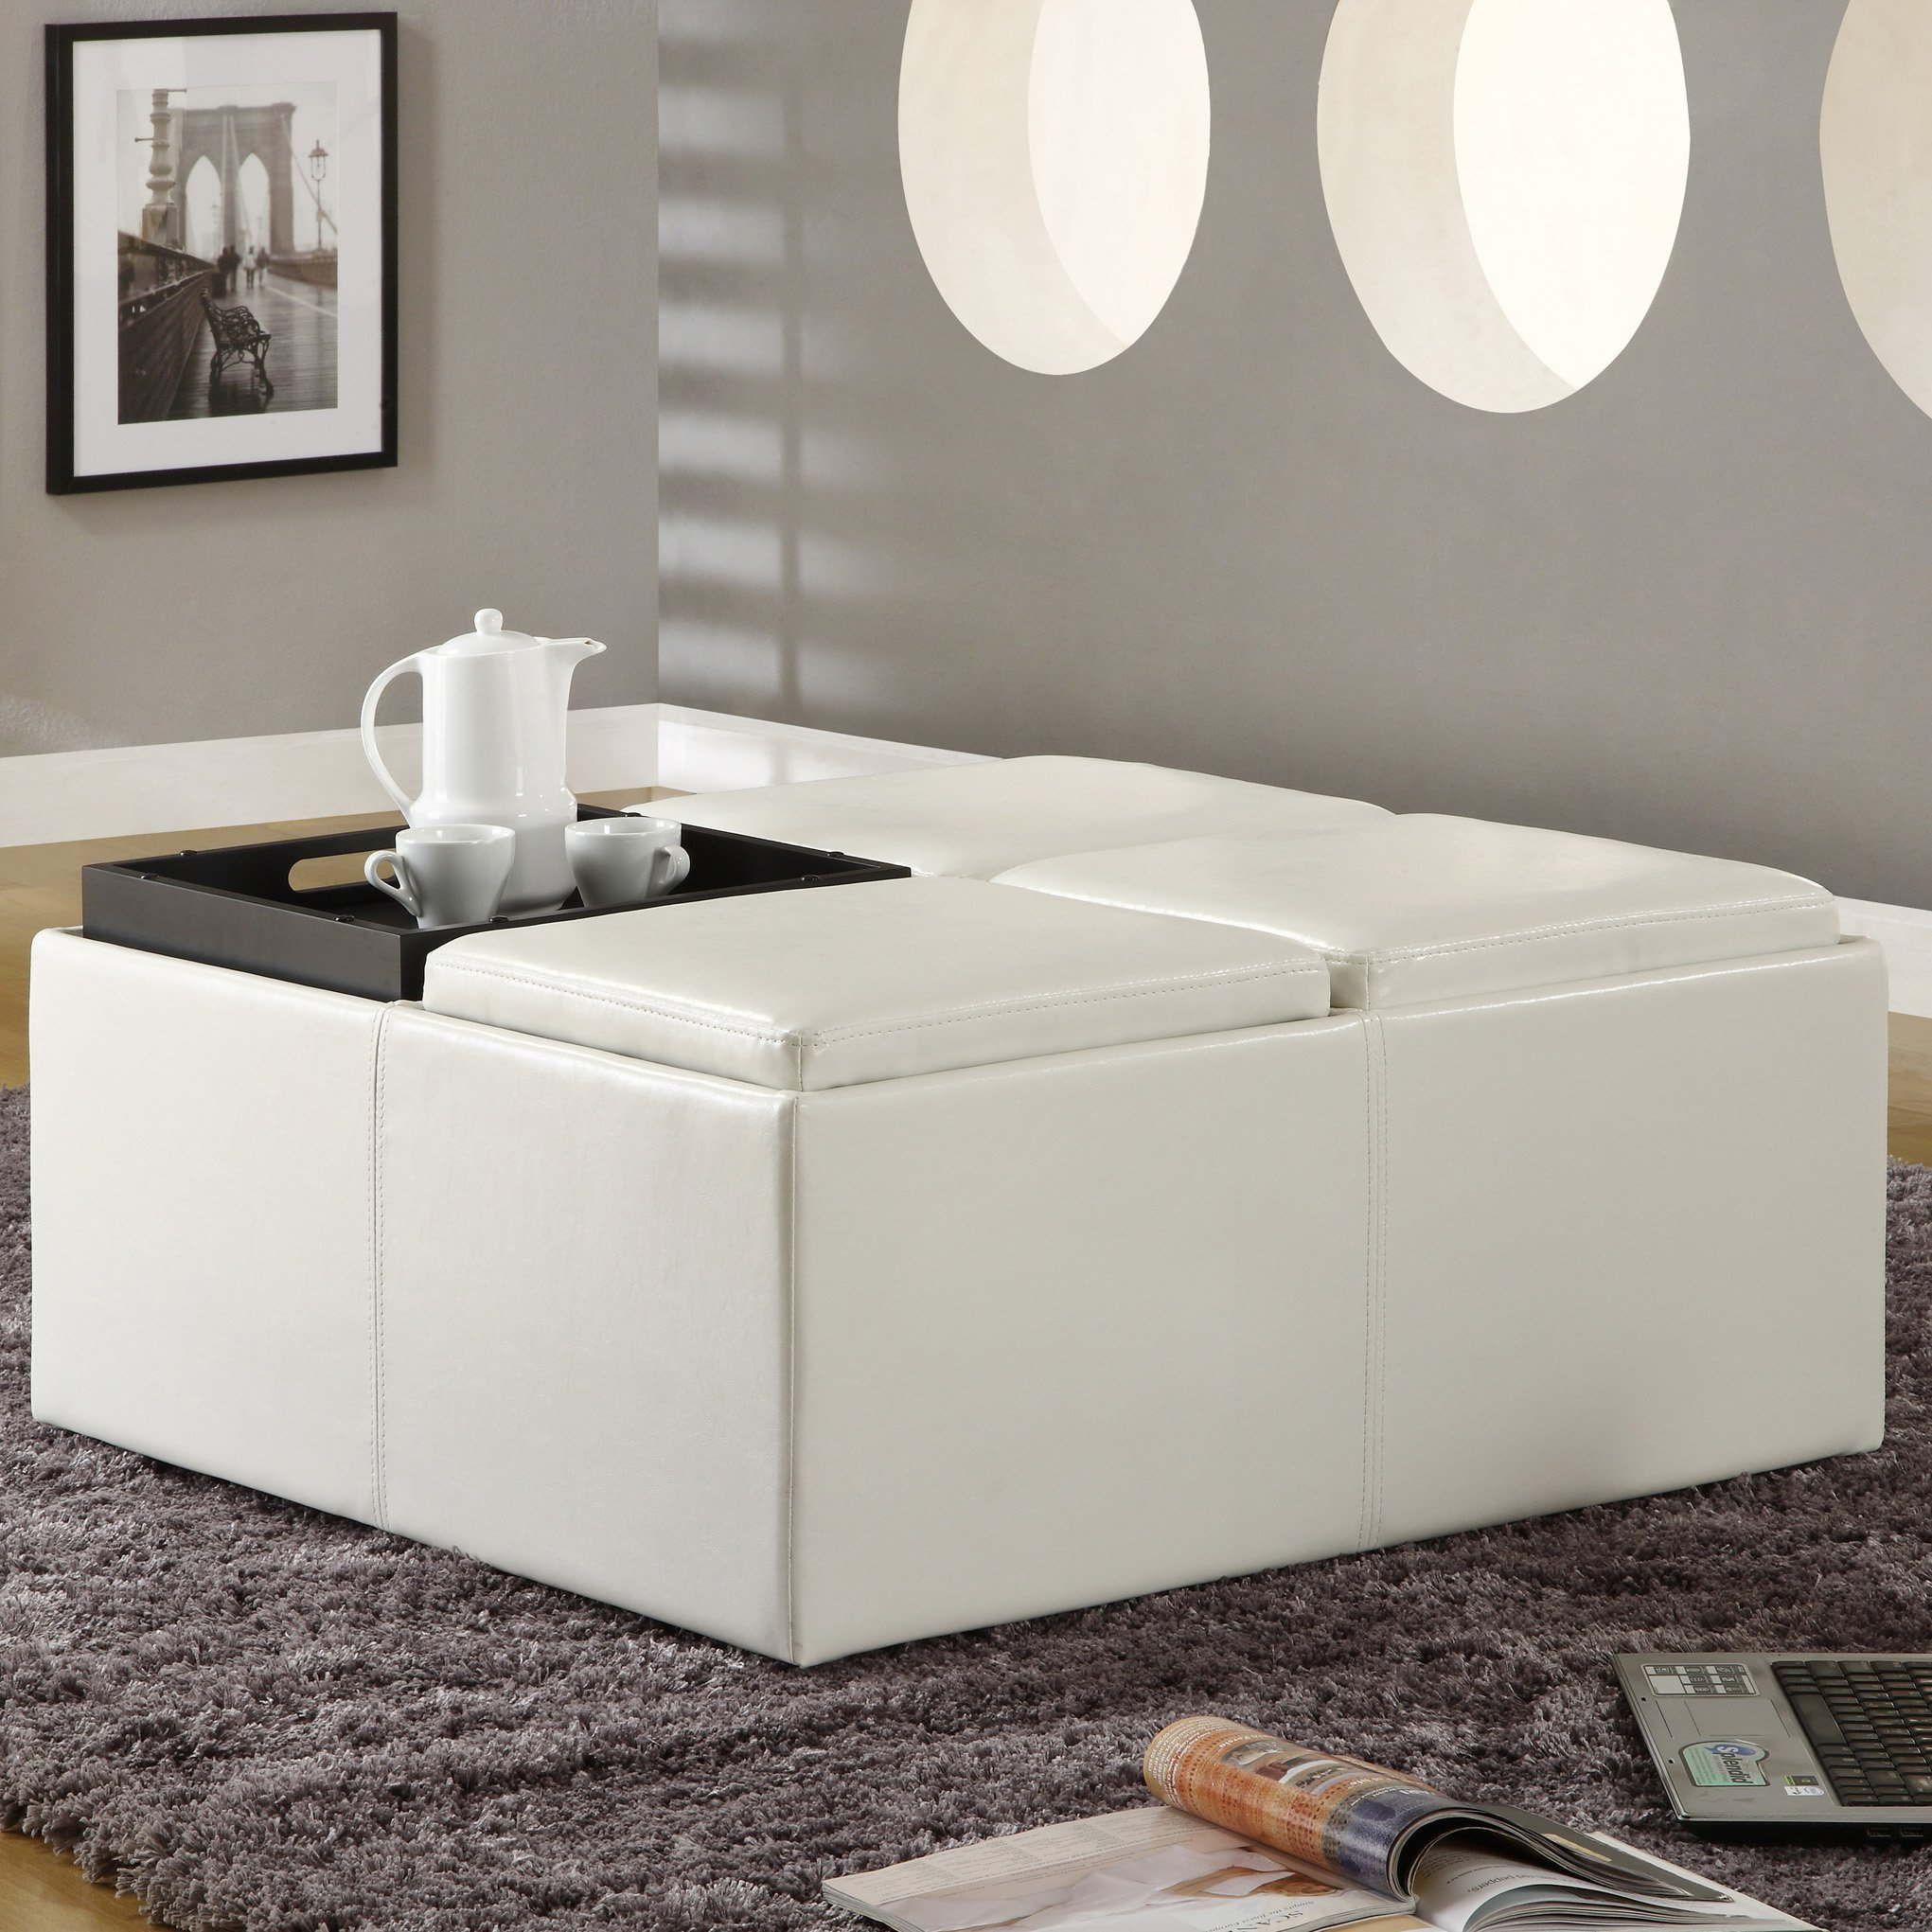 Extra Large Ottoman for Large Space Living Room Design: Extra Large Ottomans | Extra Large Ottoman | Large Cream Ottoman